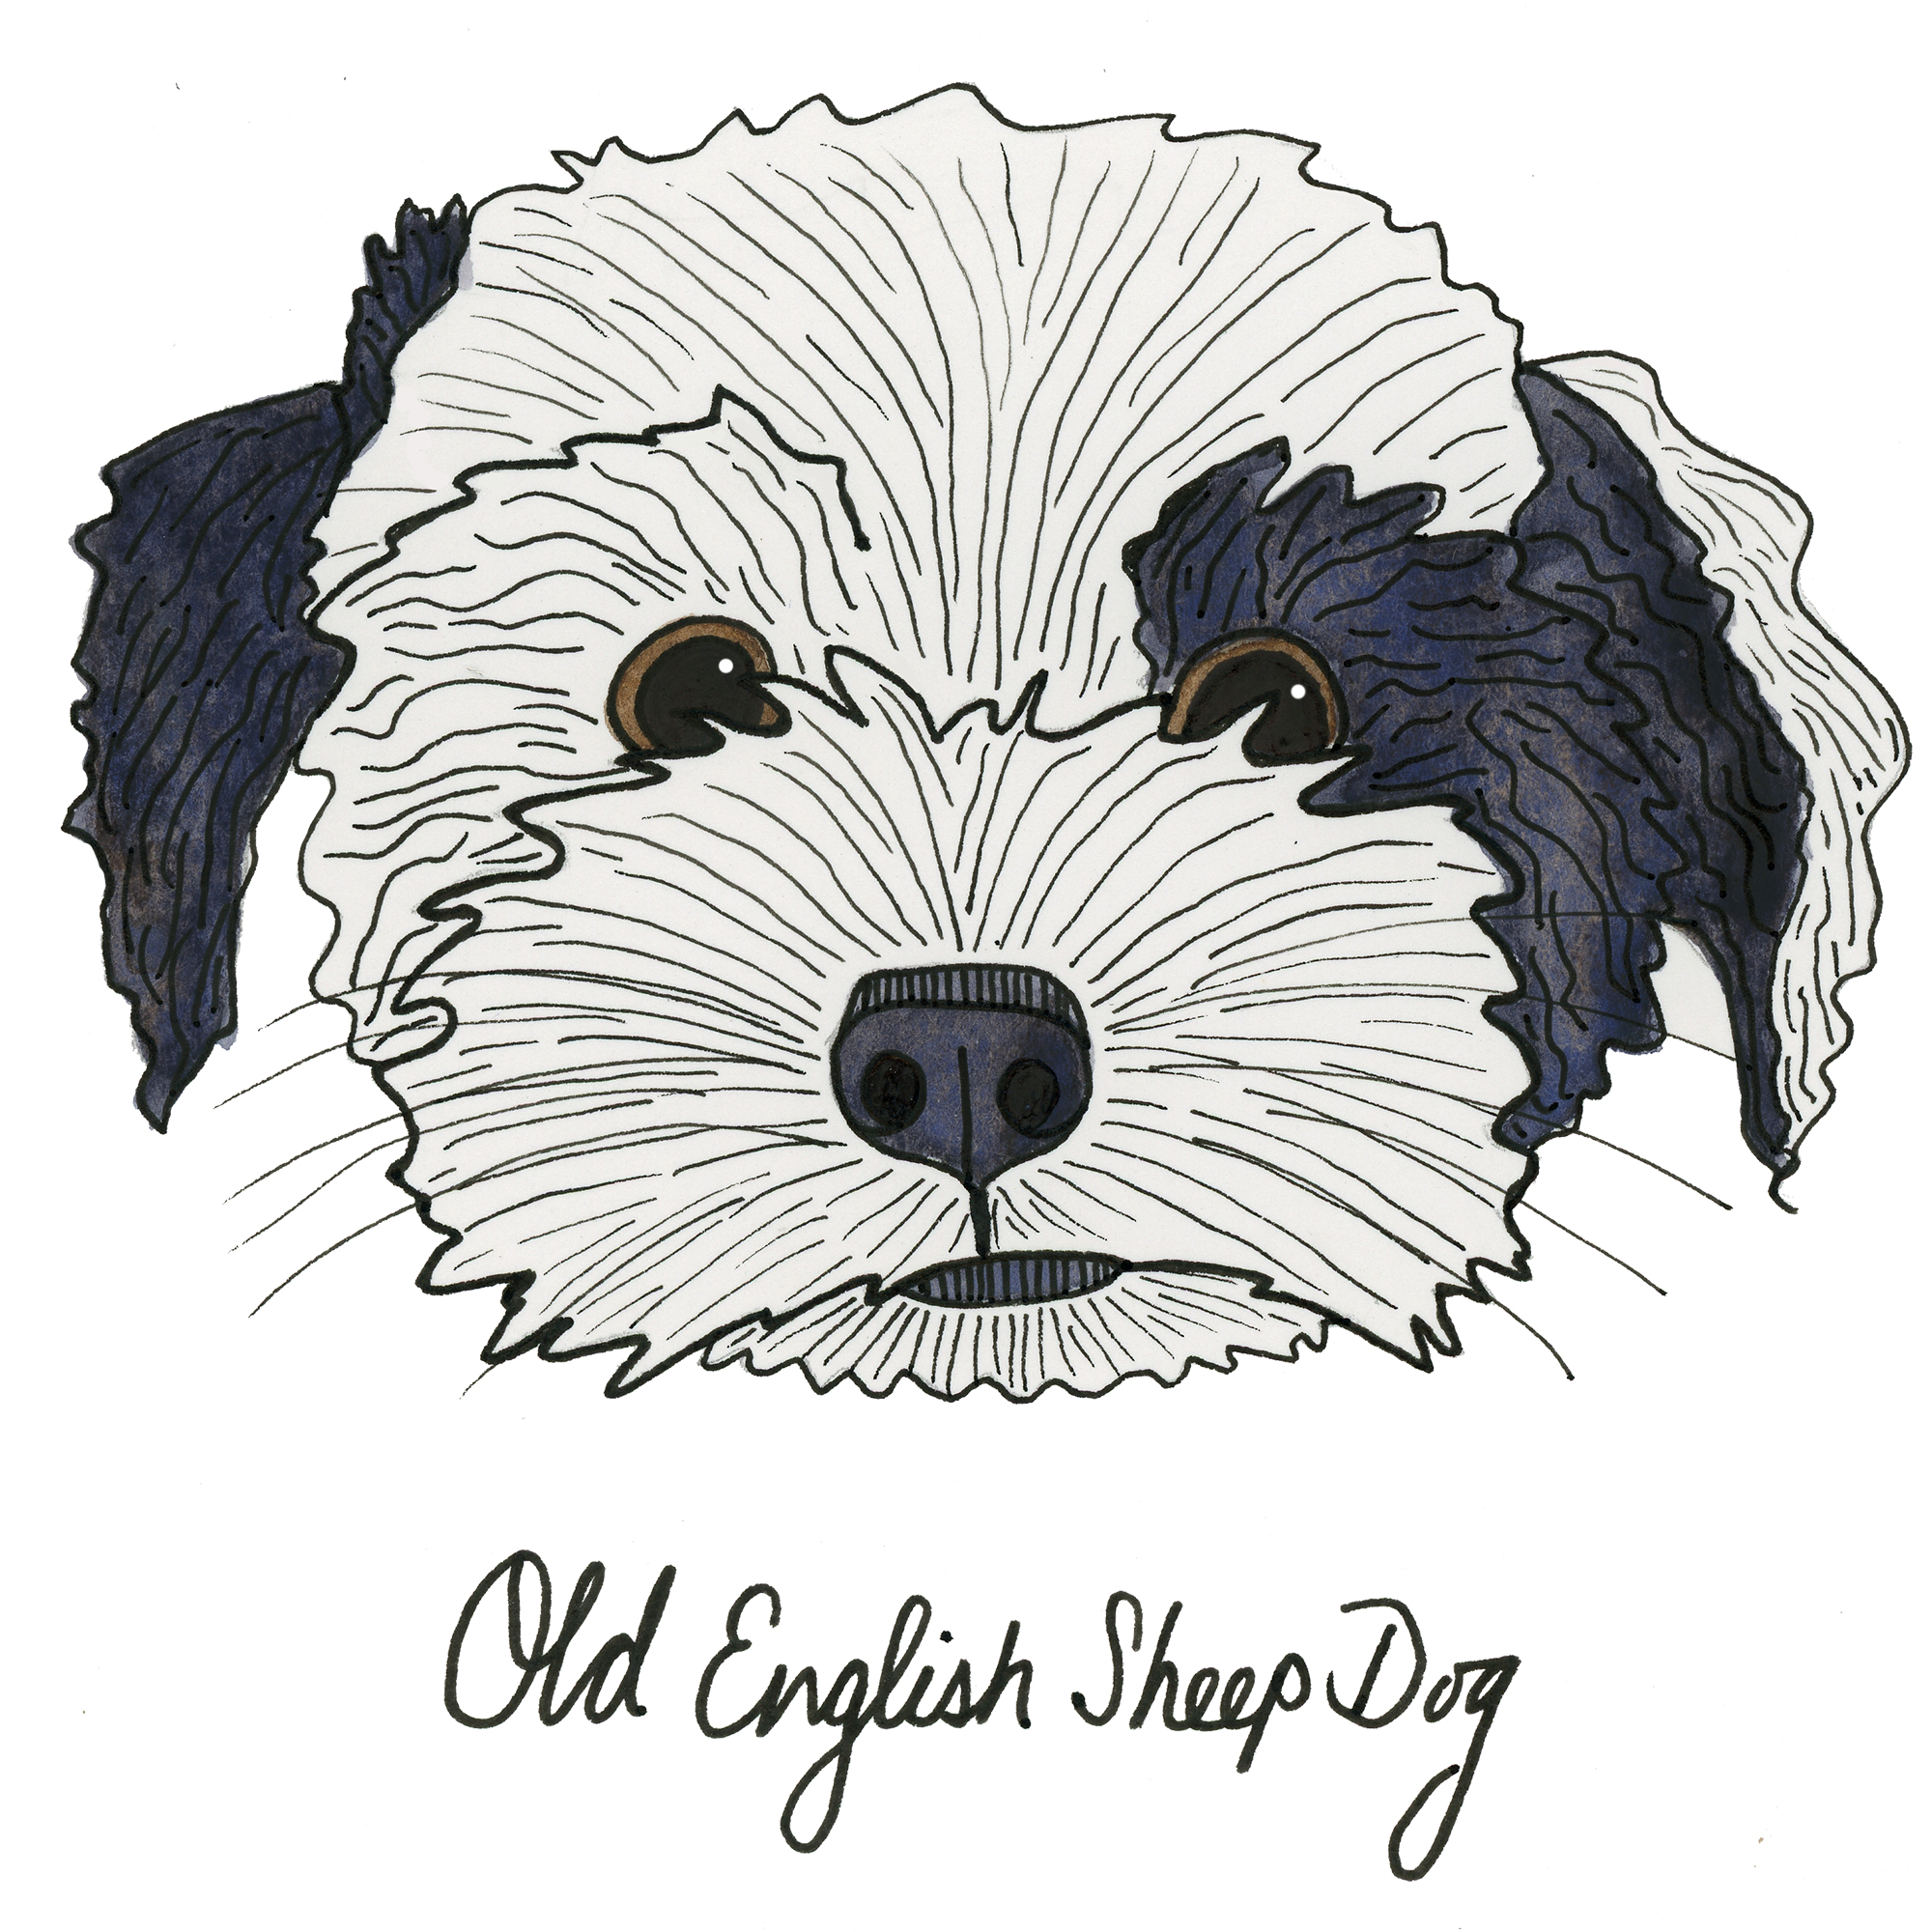 OldEnglishSheepDog.jpg